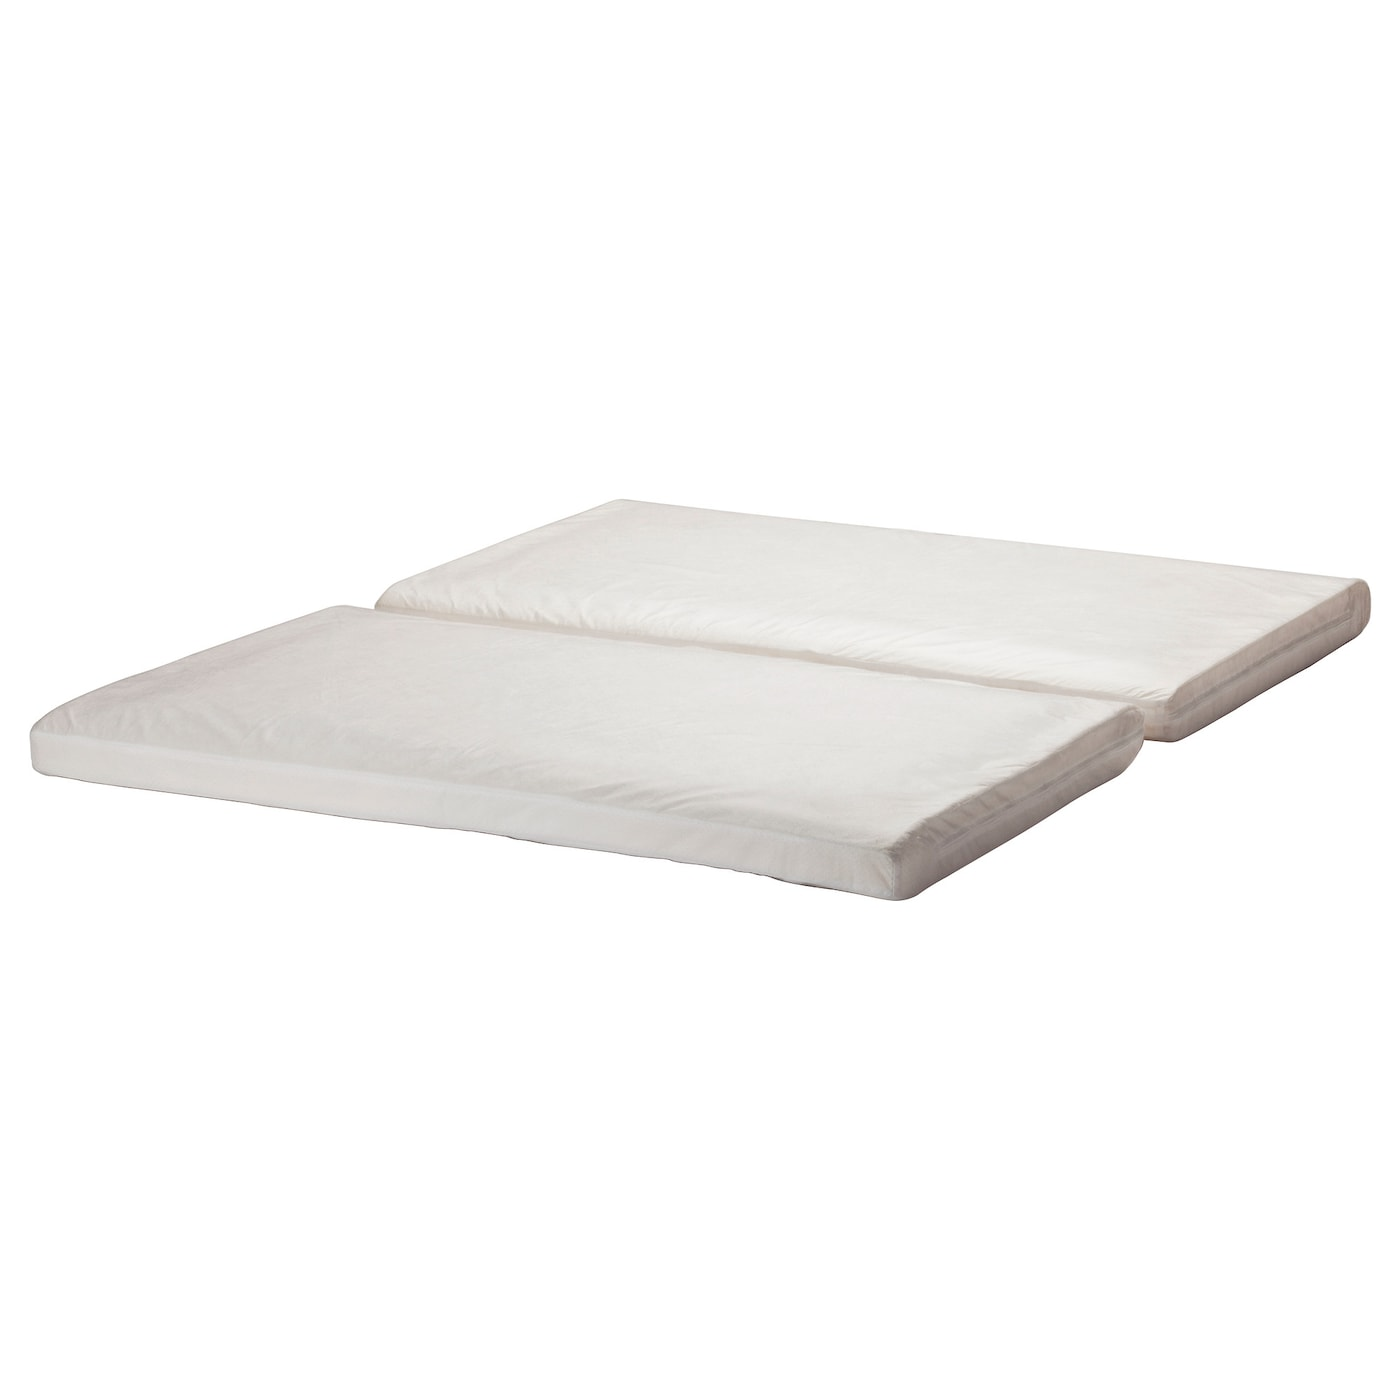 MARIEBY Mattress For Seat Sofabed IKEA - Mattress for sofa bed